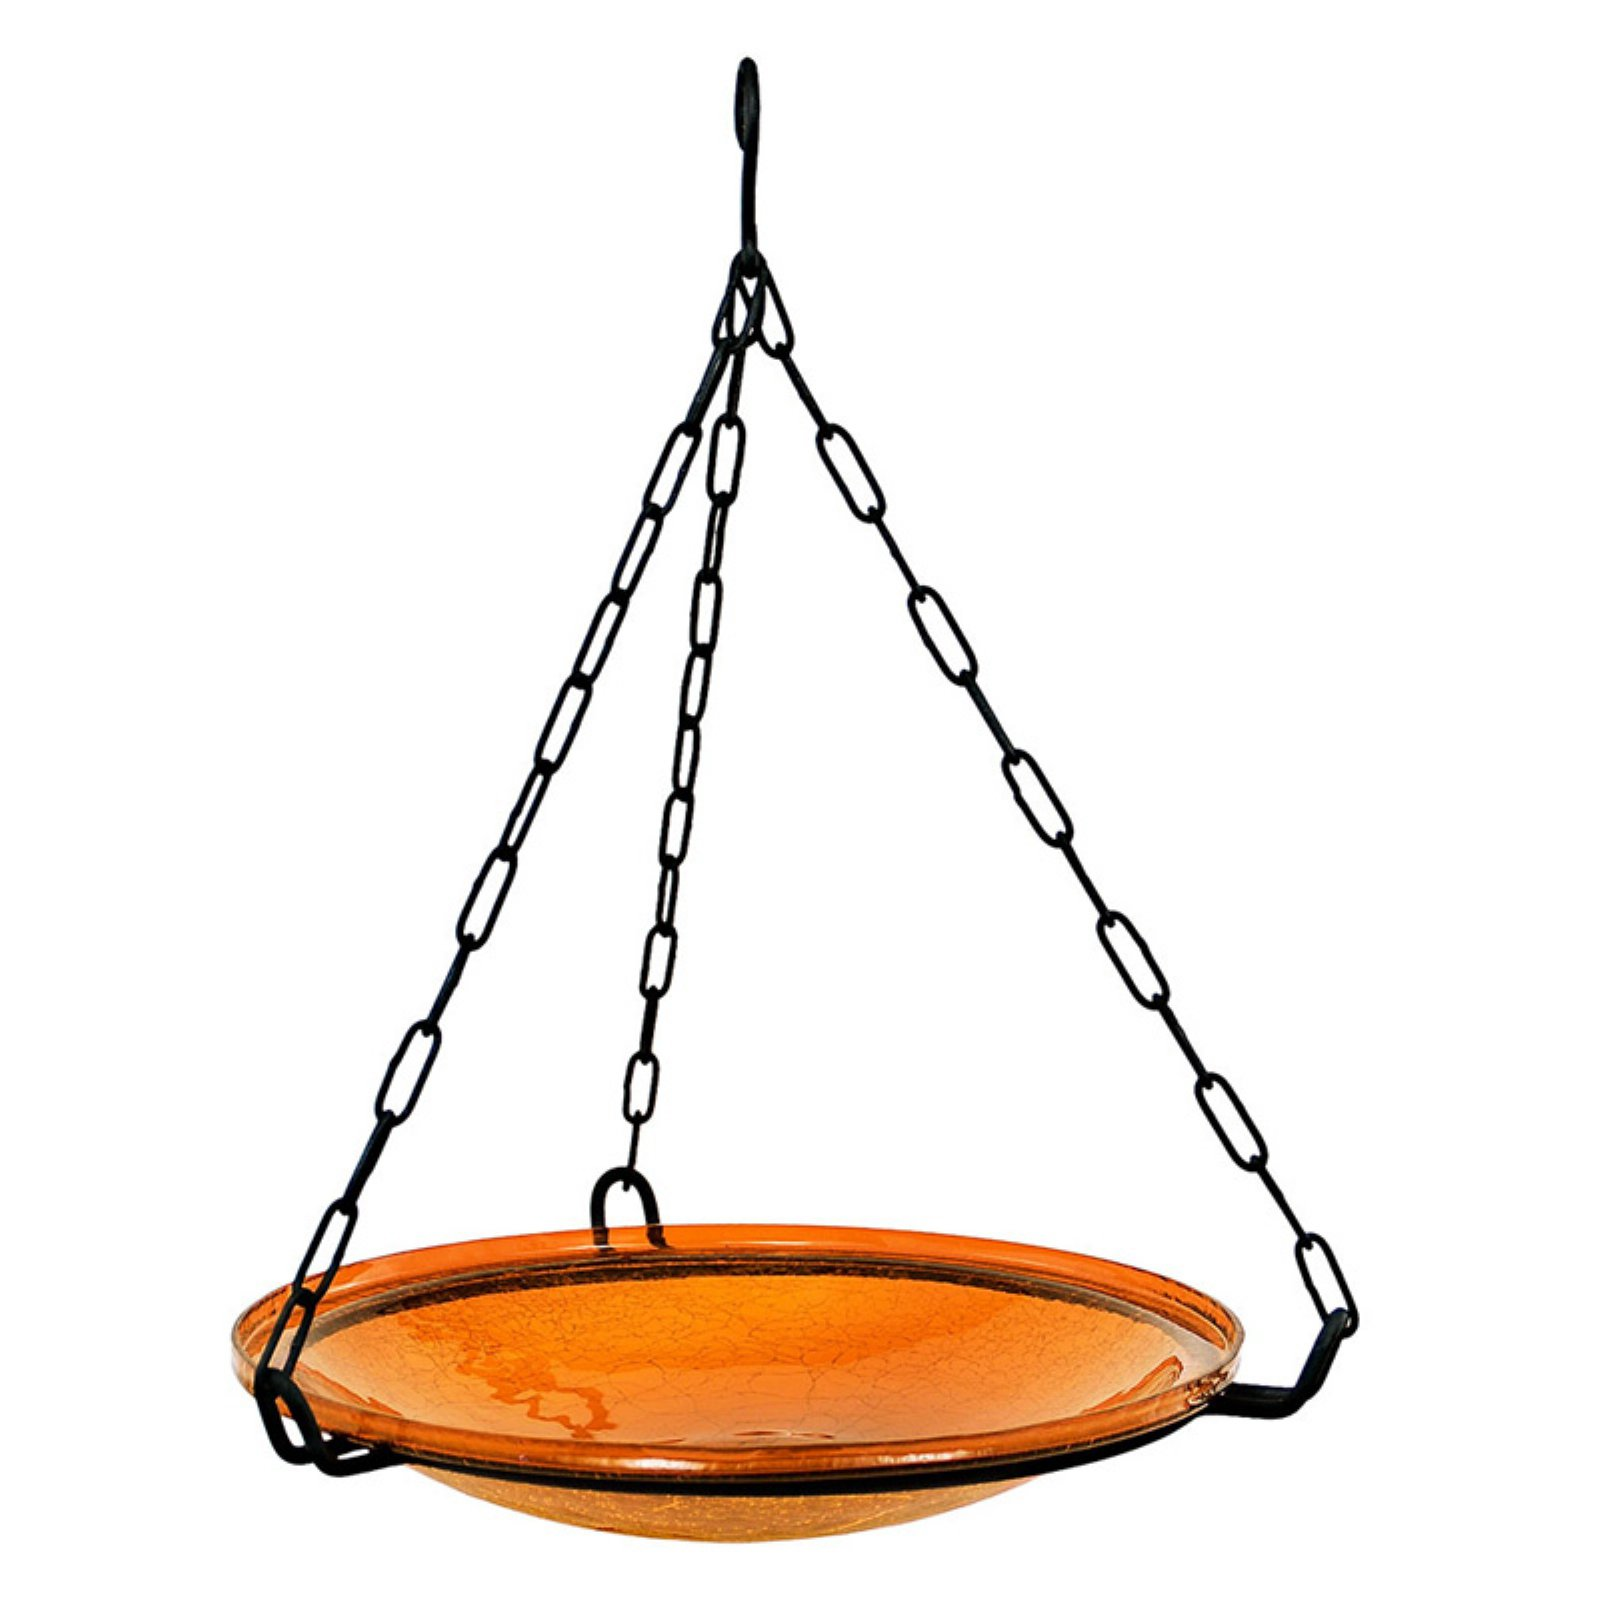 ACHLA Designs Hanging Crackle Glass Birdbath Bowl - Mandarin